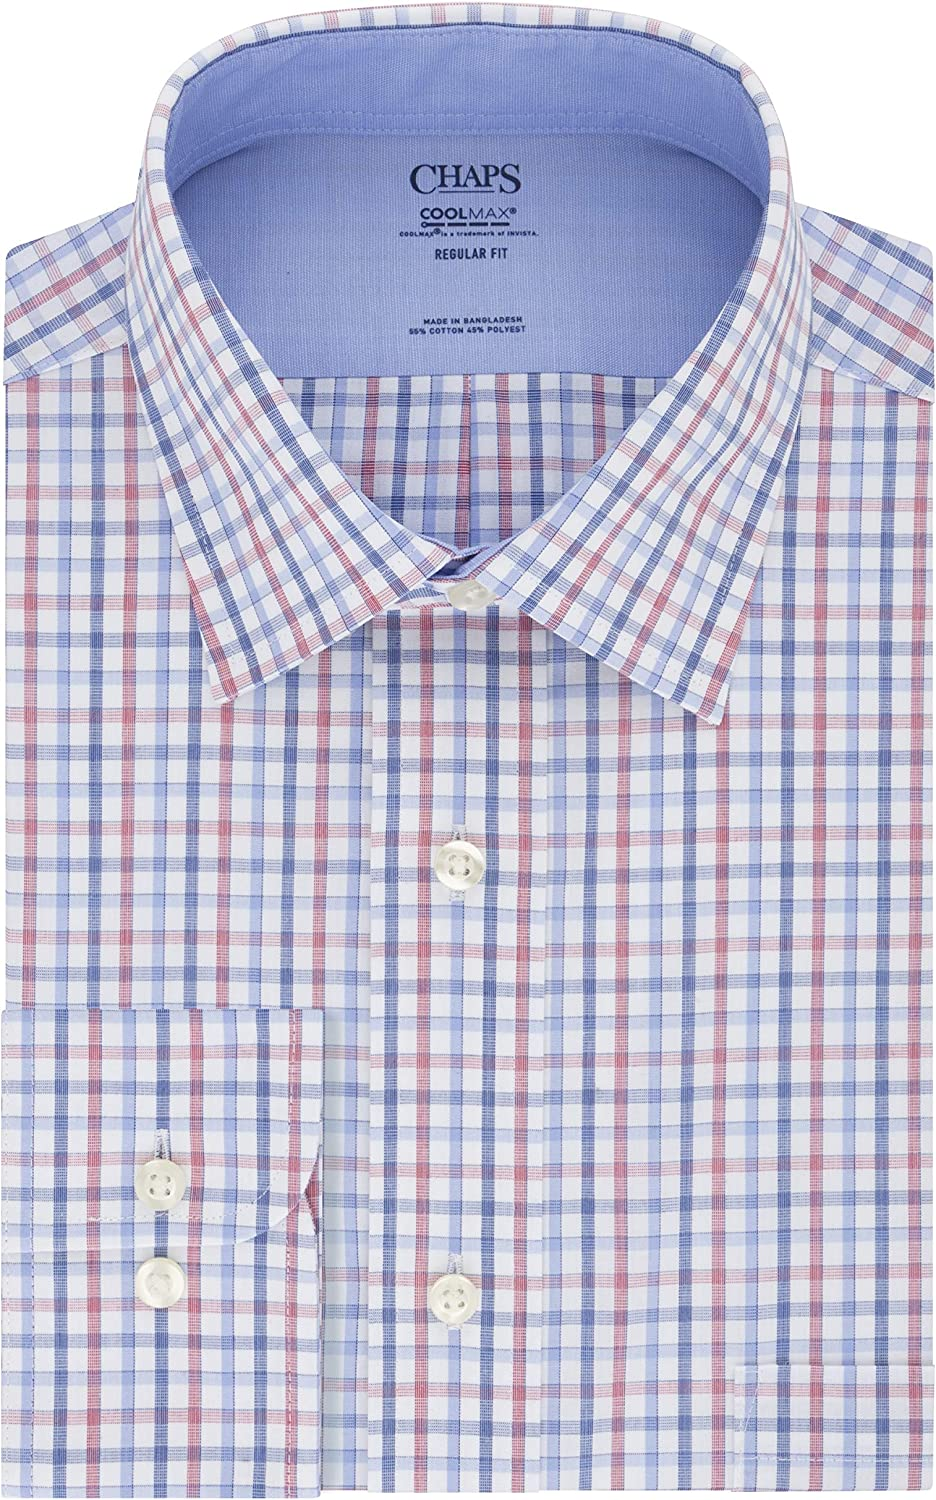 Chaps Men's Dress Shirt Regular Fit Stretch Collar Cool Max Check